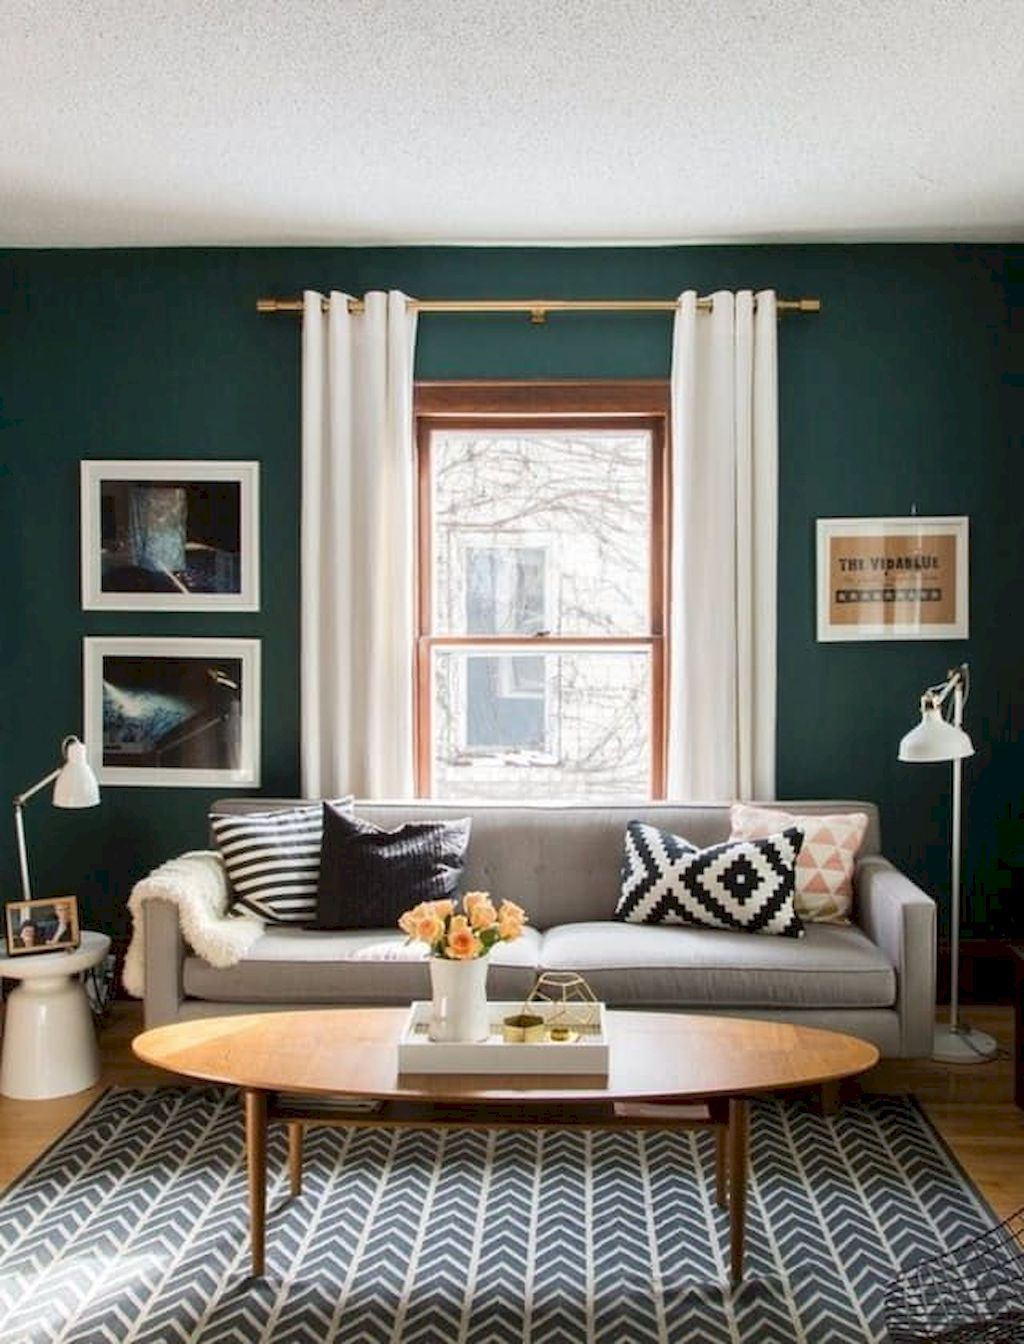 Best Interior Wall Color Ideas for 2019 Part 1 images